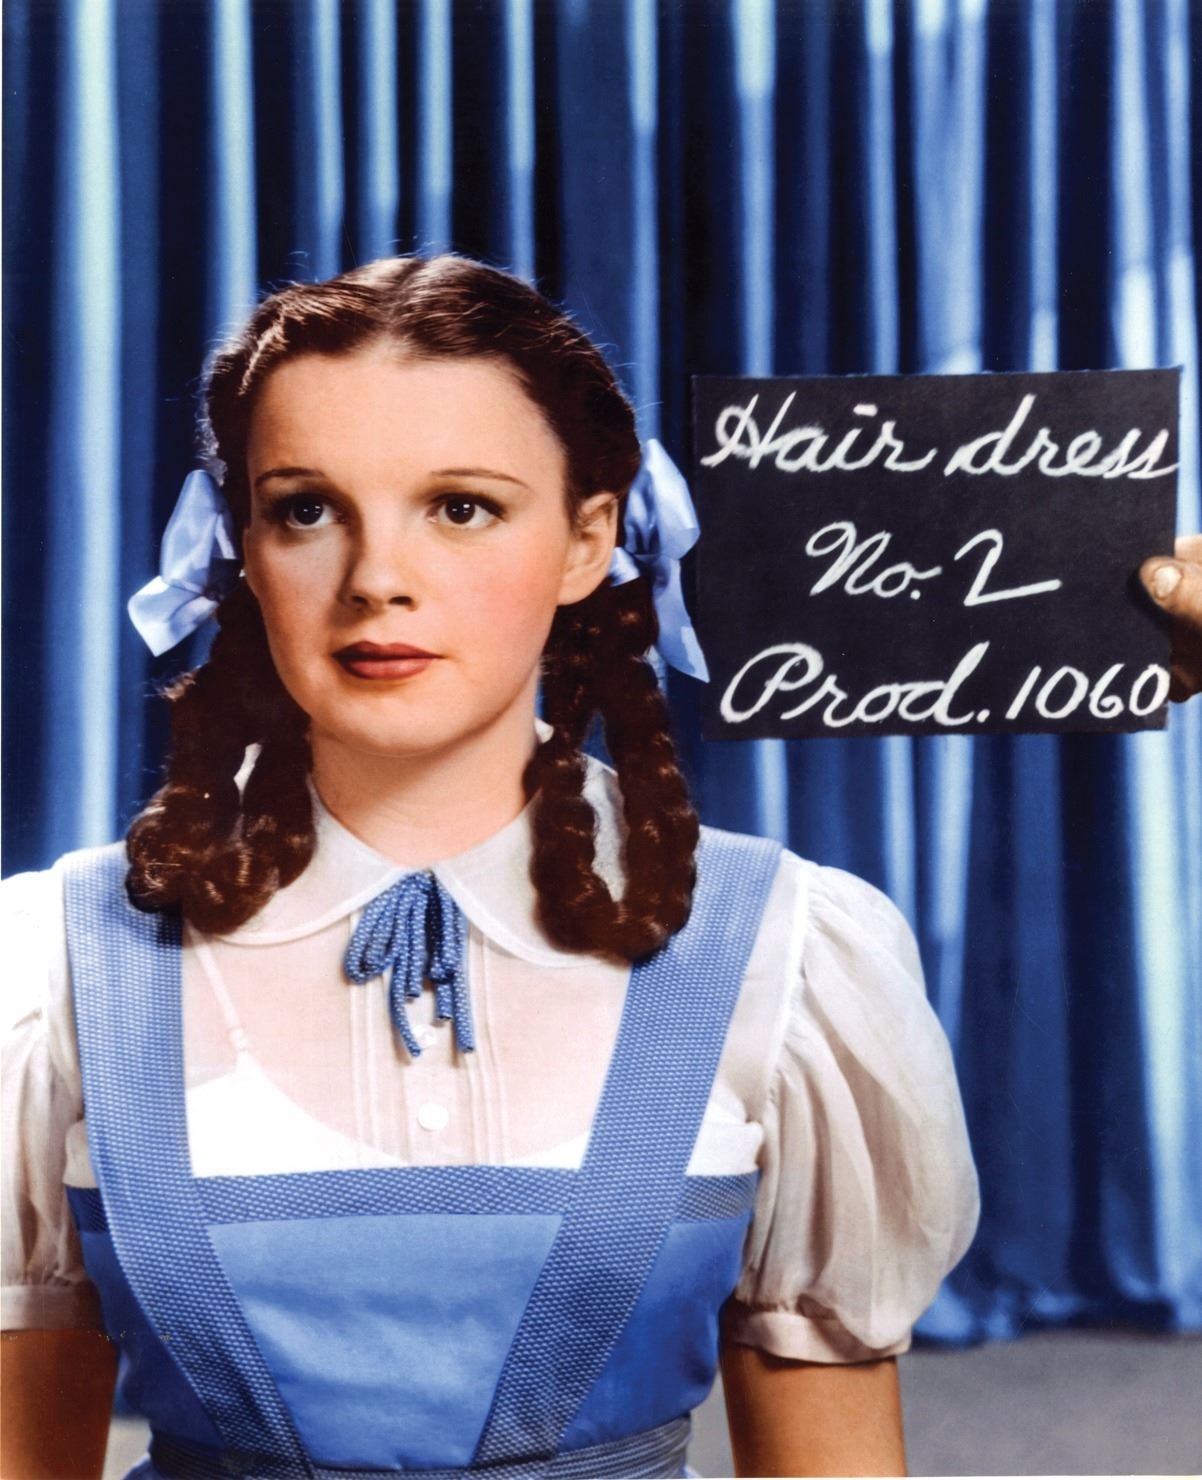 Judy Garland Dorothy Gale Jumper And Blouse Worn First Two Weeks Of Filming From The Wizard Of Oz